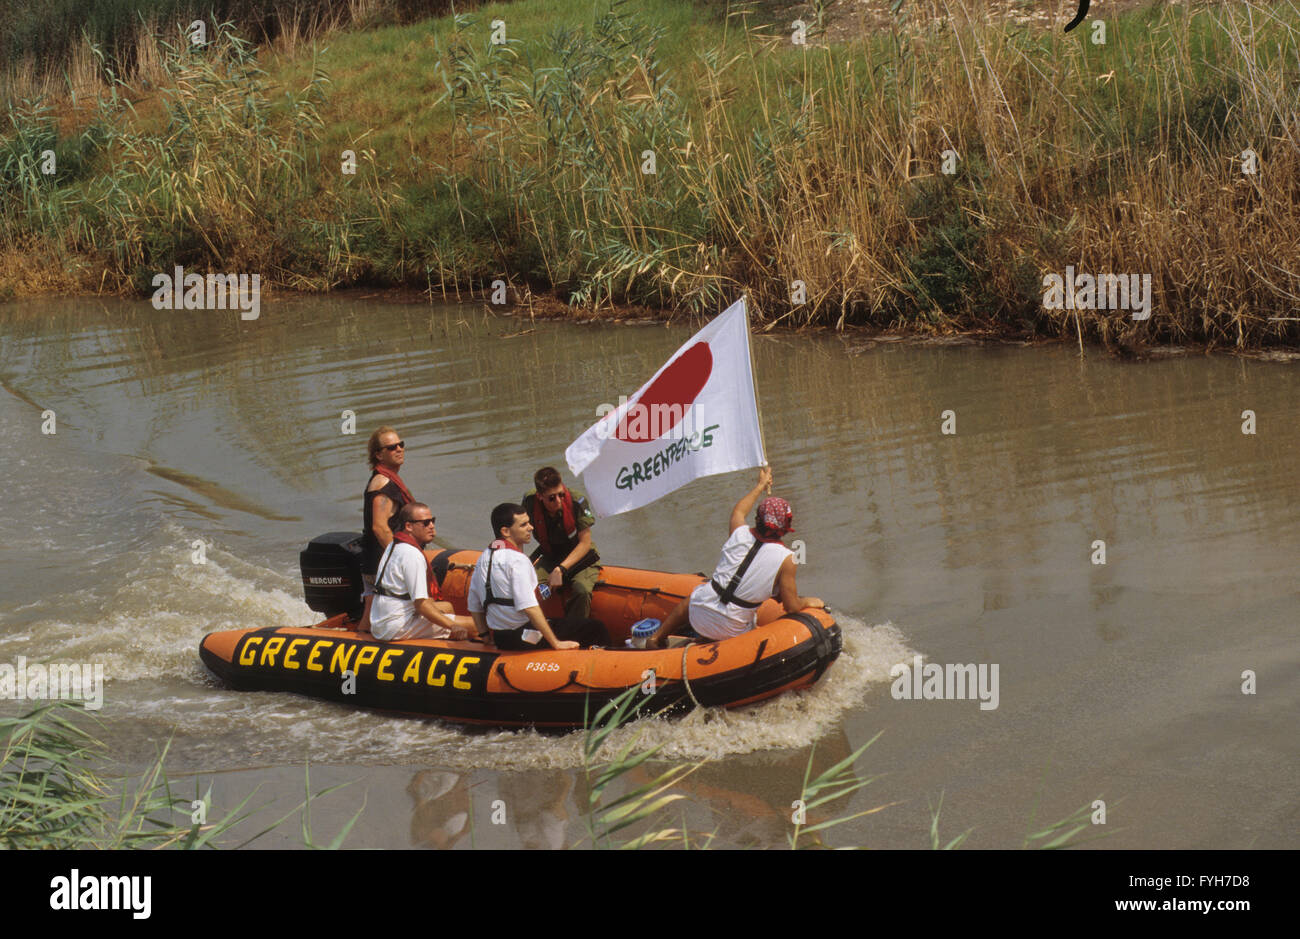 Greenpeace protest dinghy in a river in Israel - Stock Image